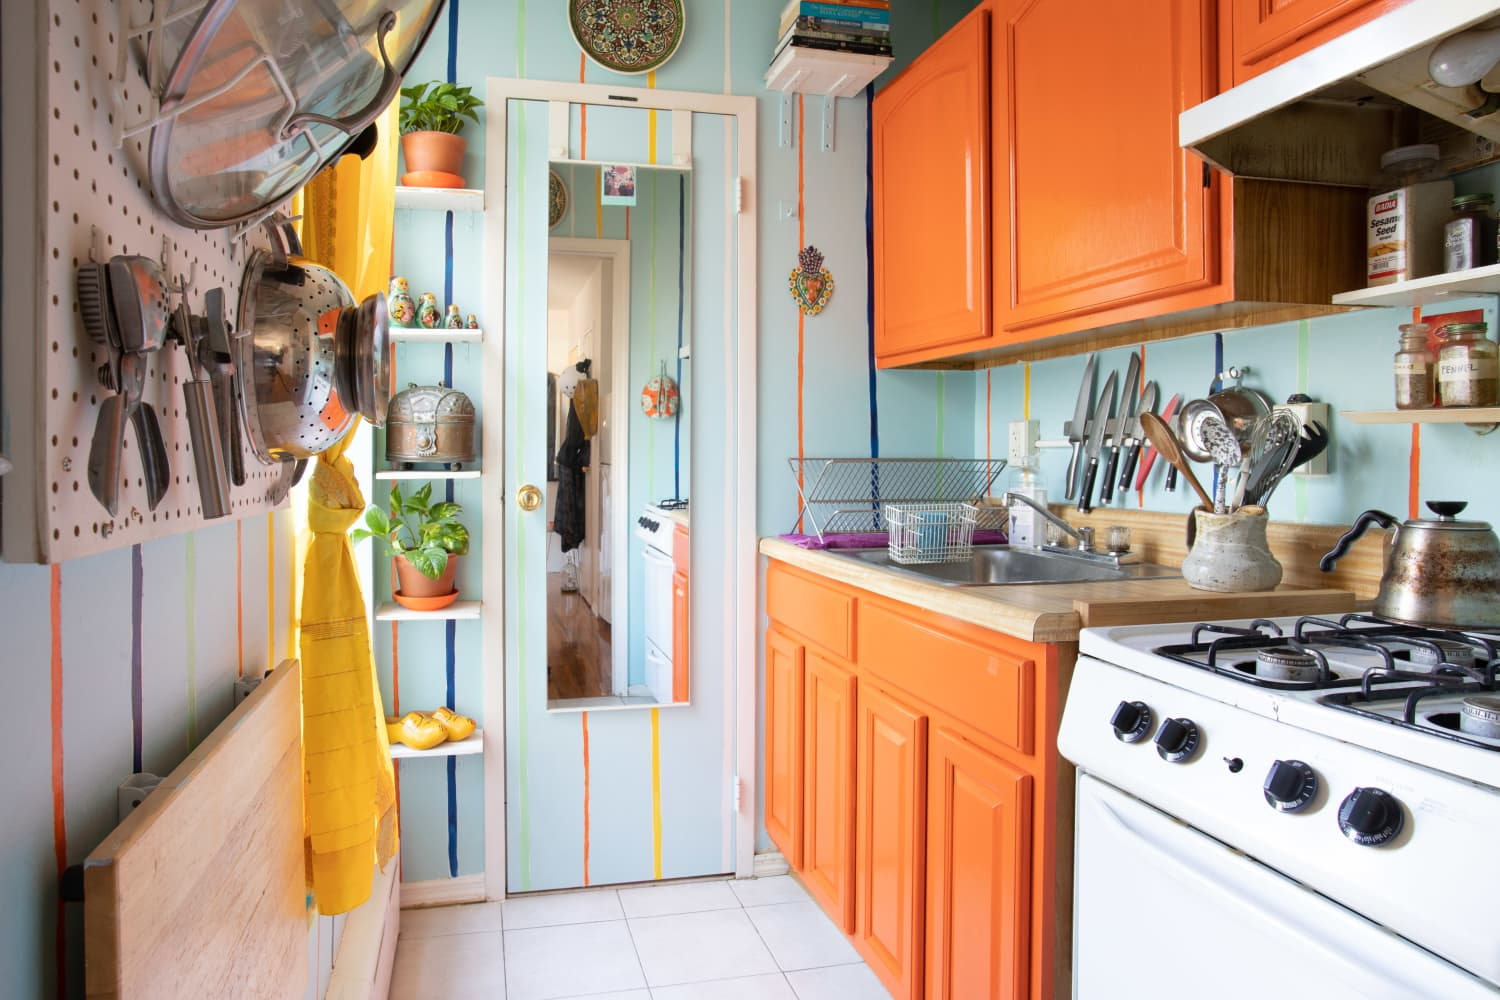 Incredible Color and DIY Projects Fill This Small Brooklyn Apartment